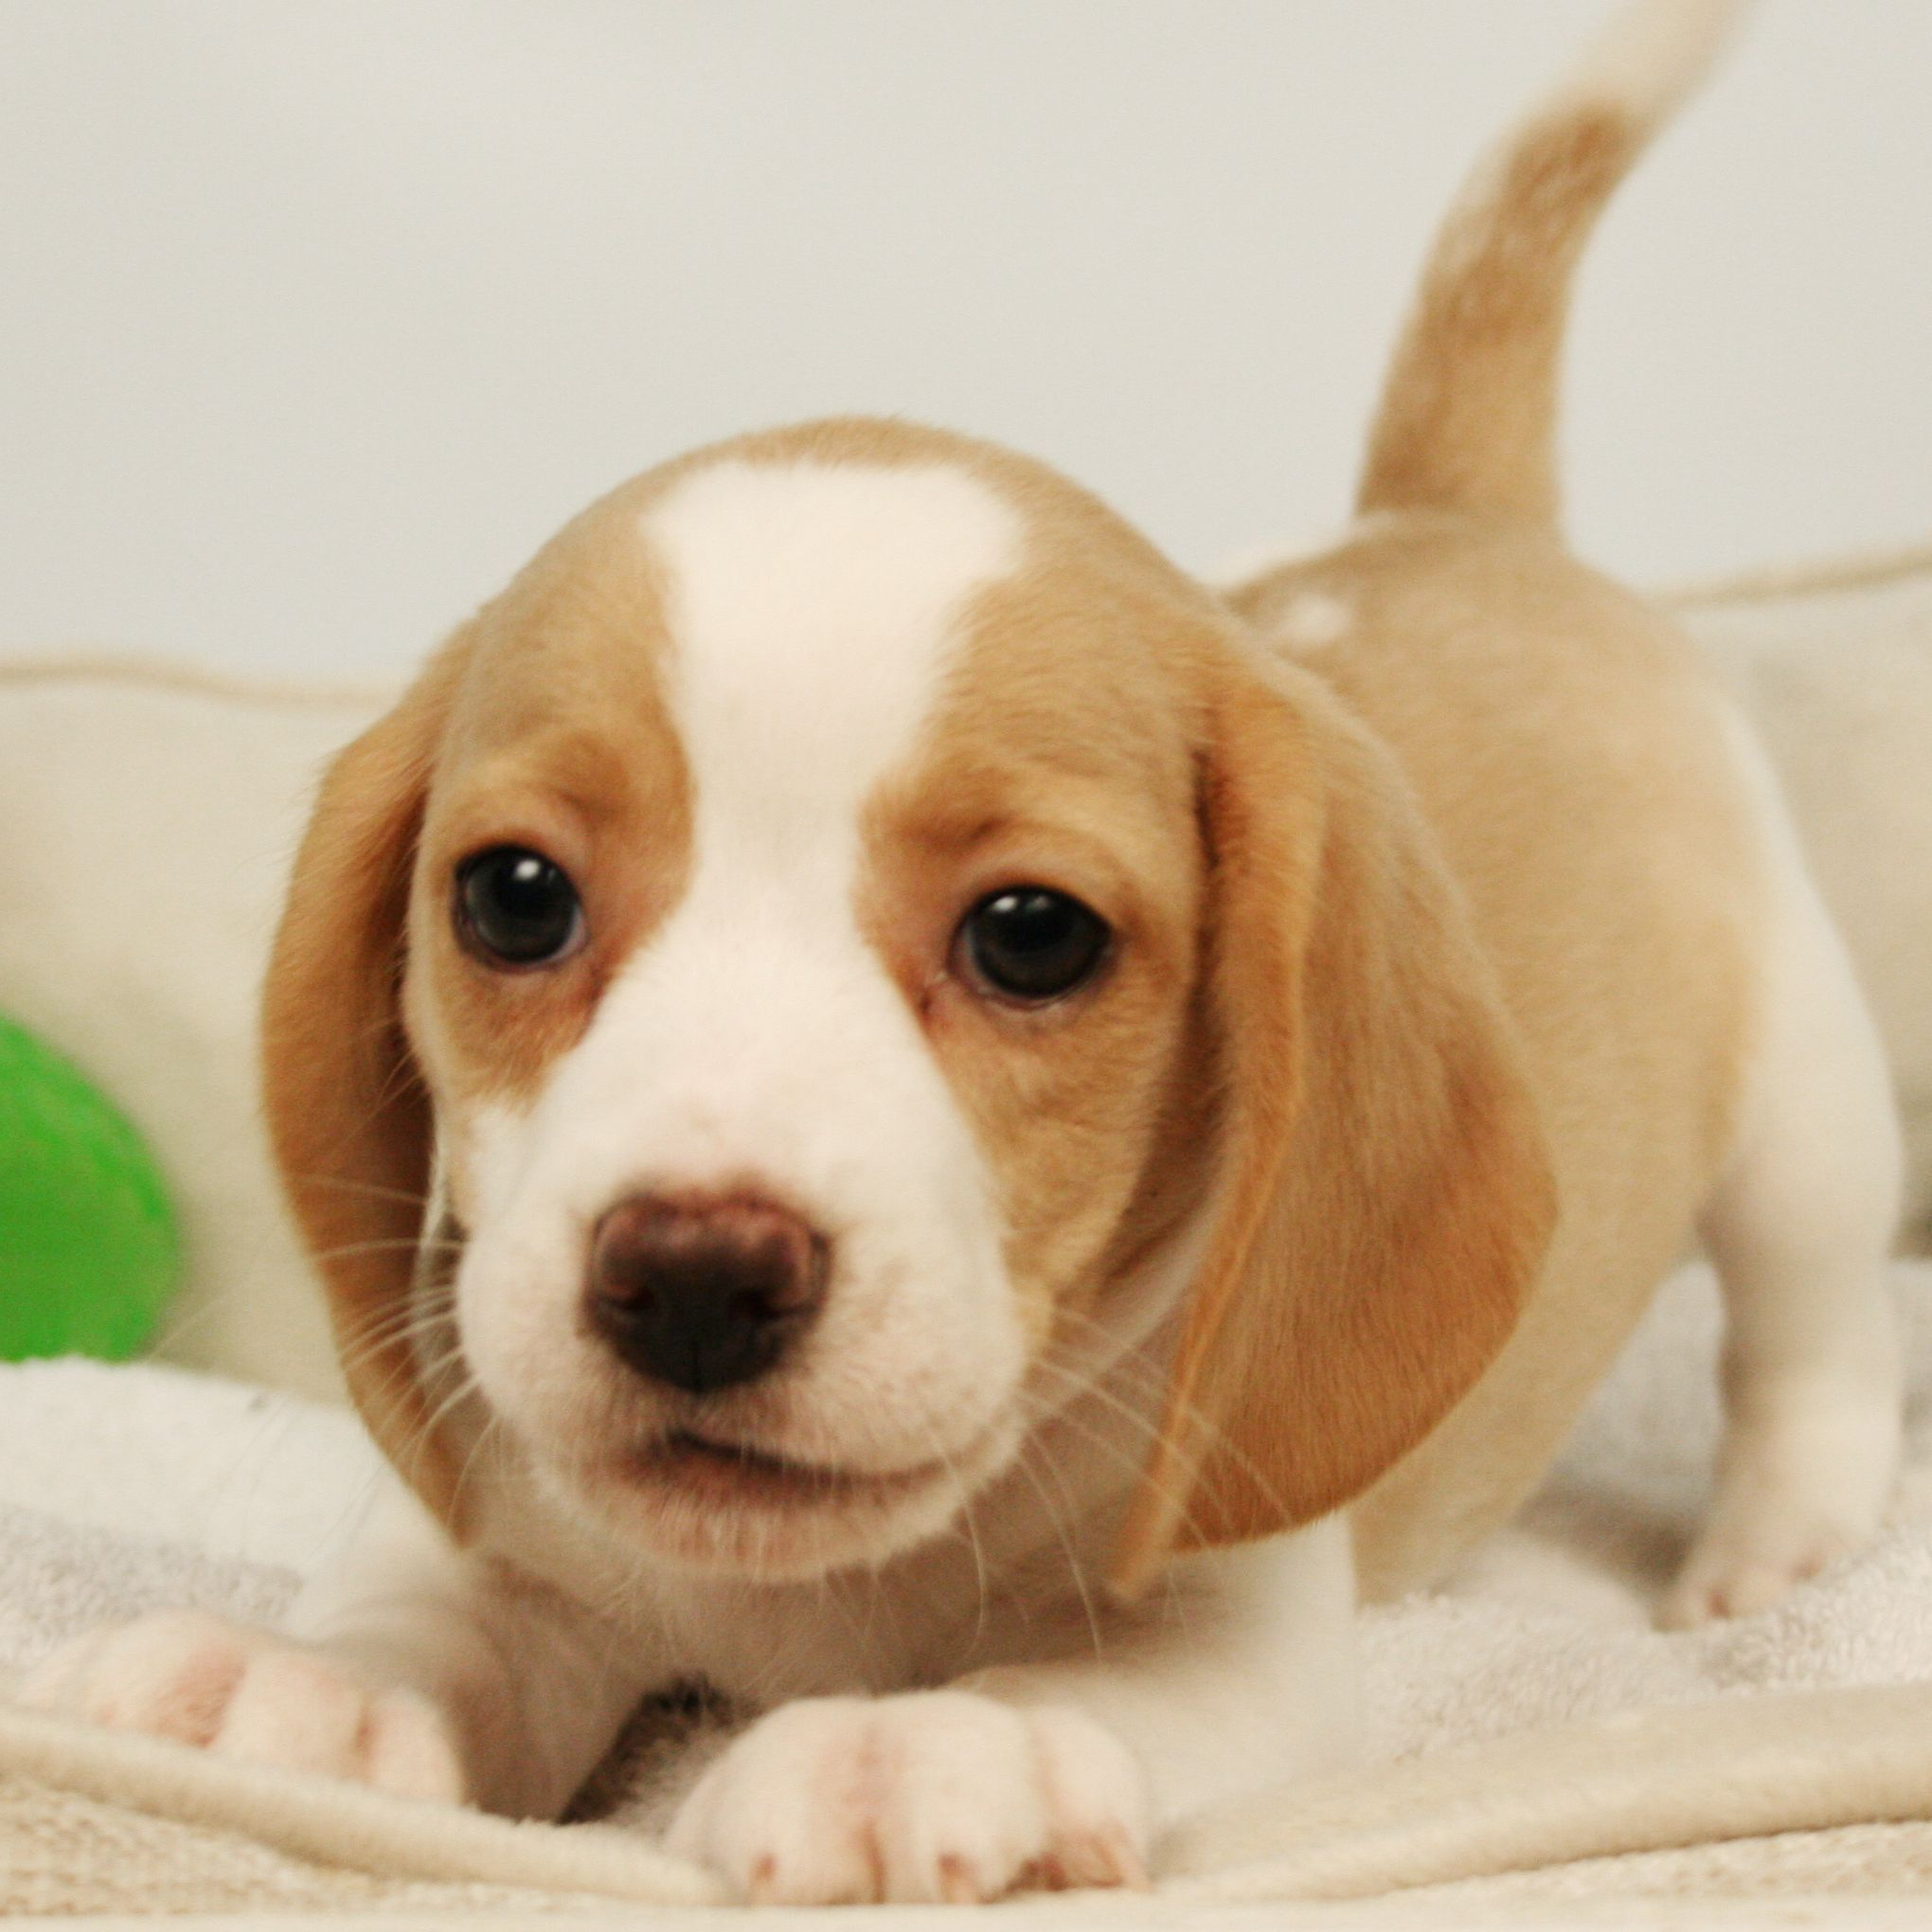 Beagles Are Sweet And Adorable Puppies Adorablepuppypics